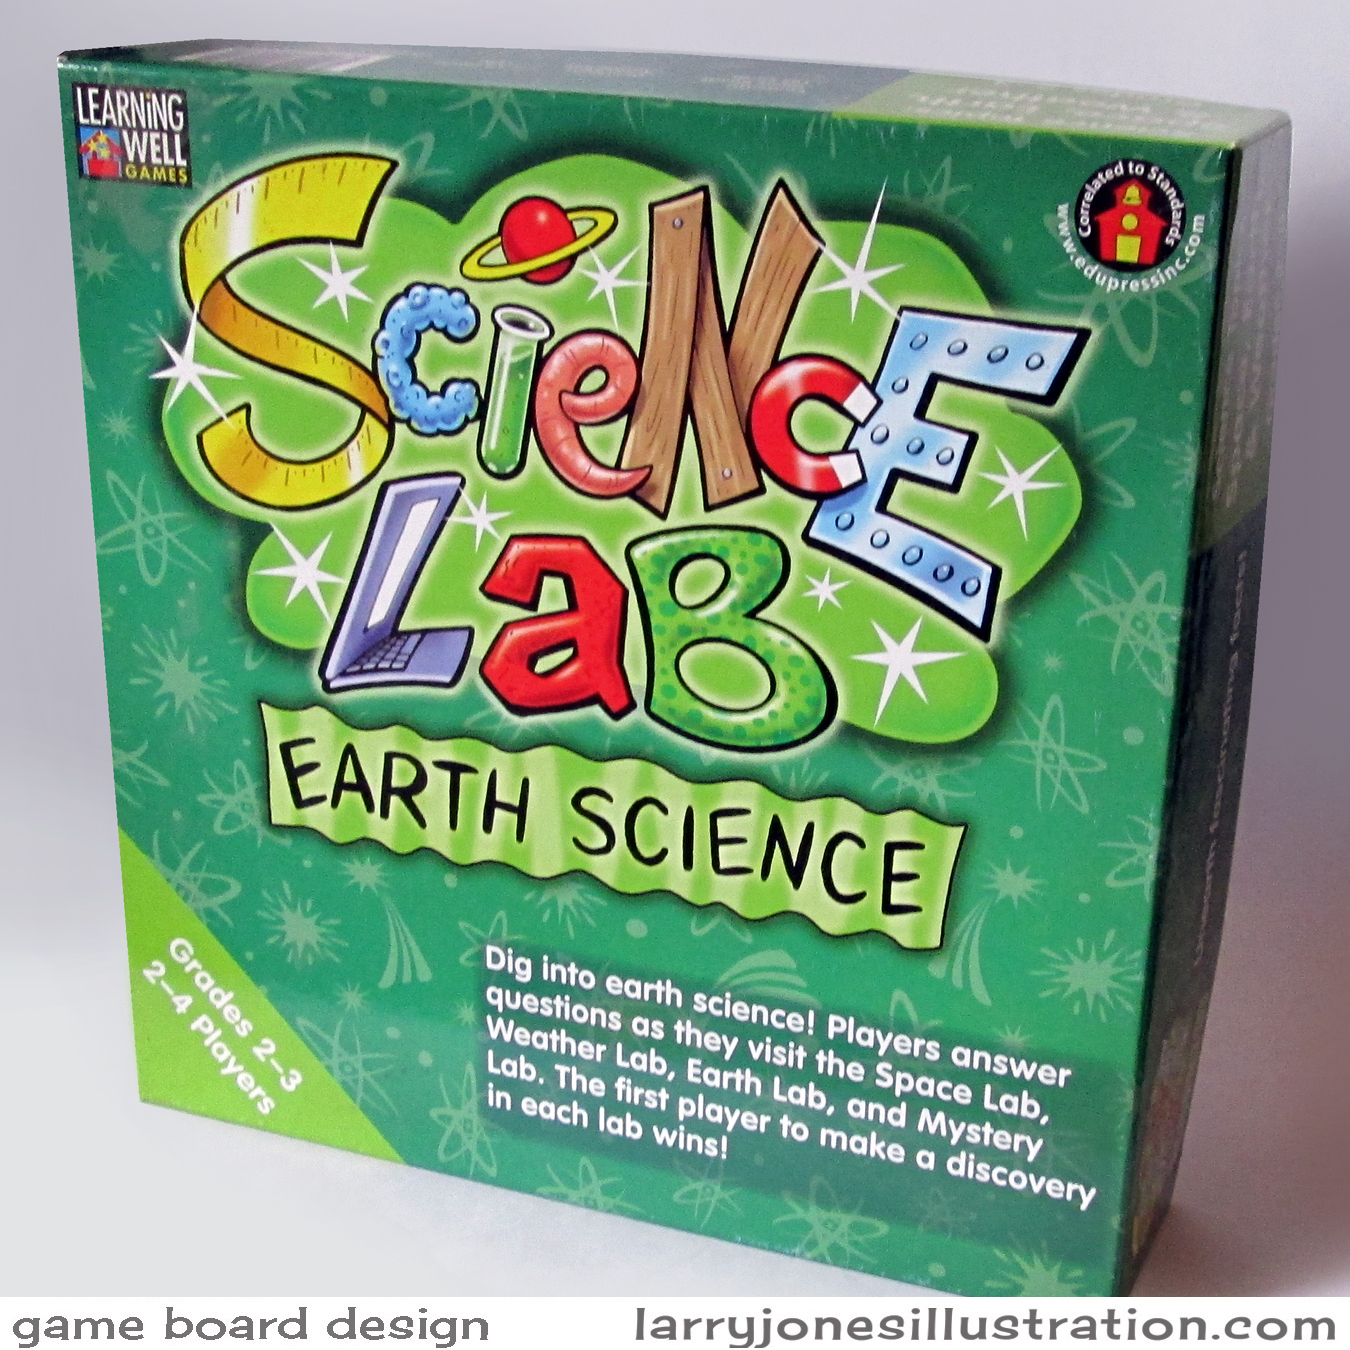 science-game-board-design.jpg